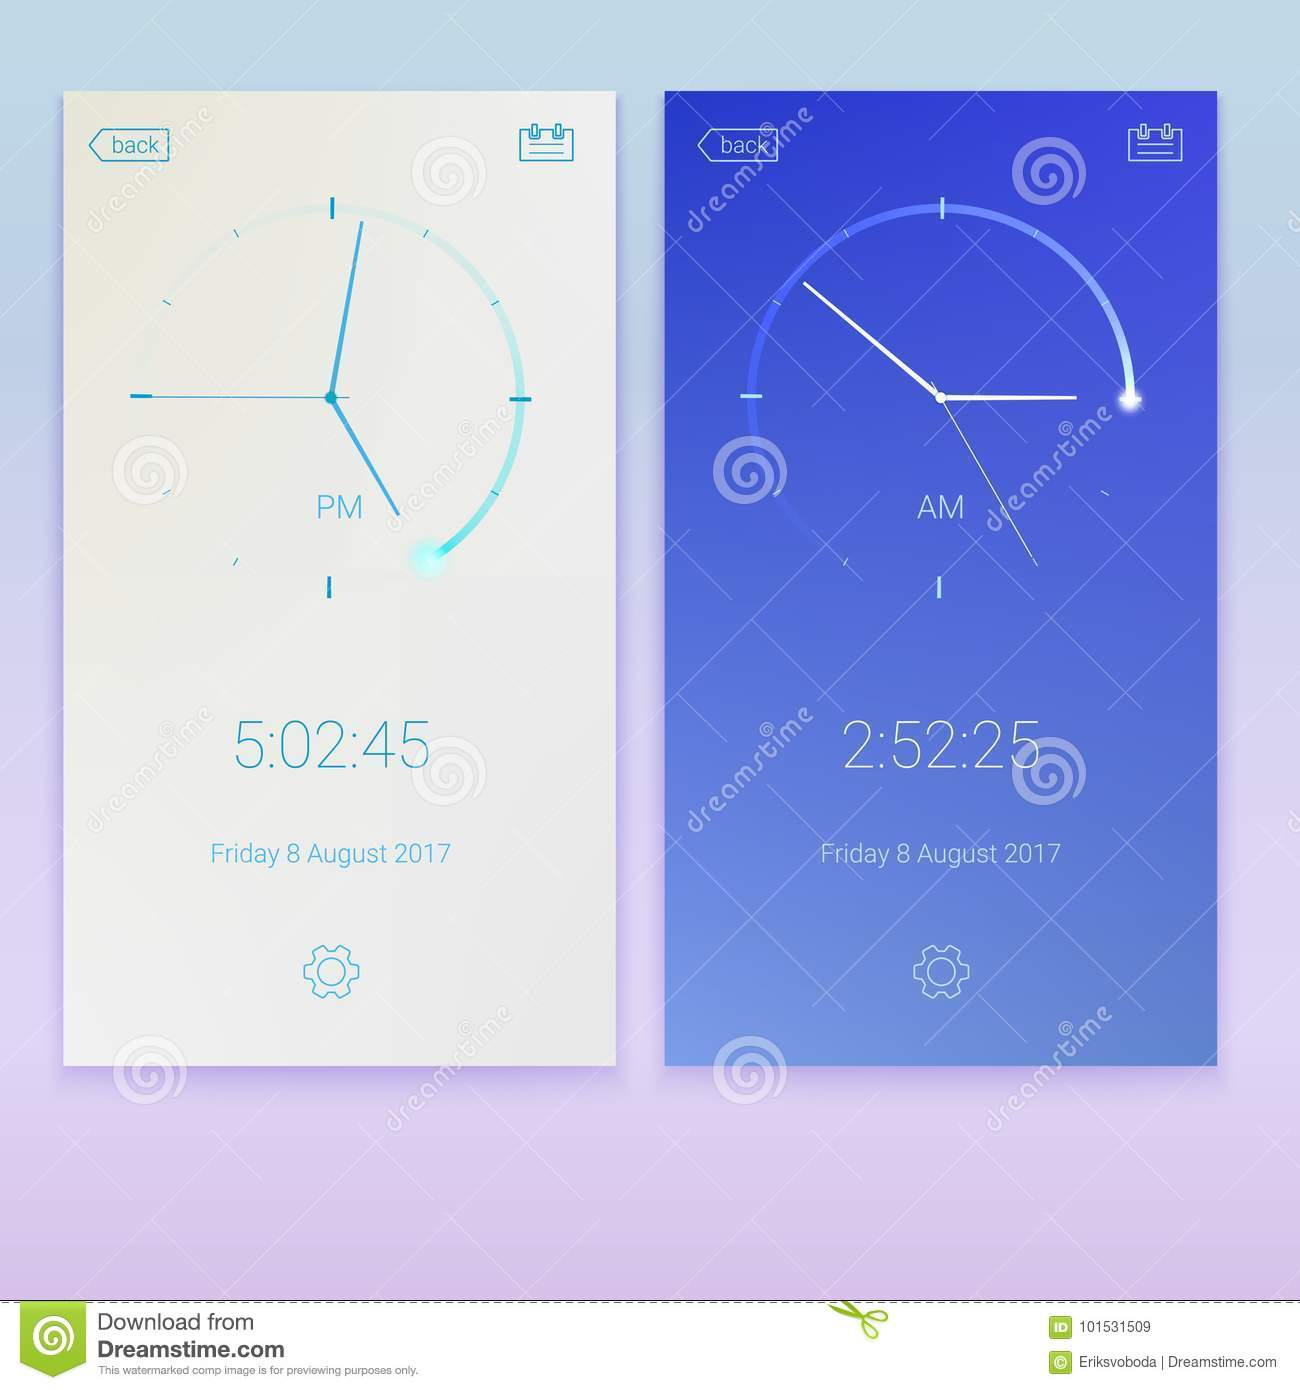 Clock Application, Concept Of UI Design, Day And Night Variants